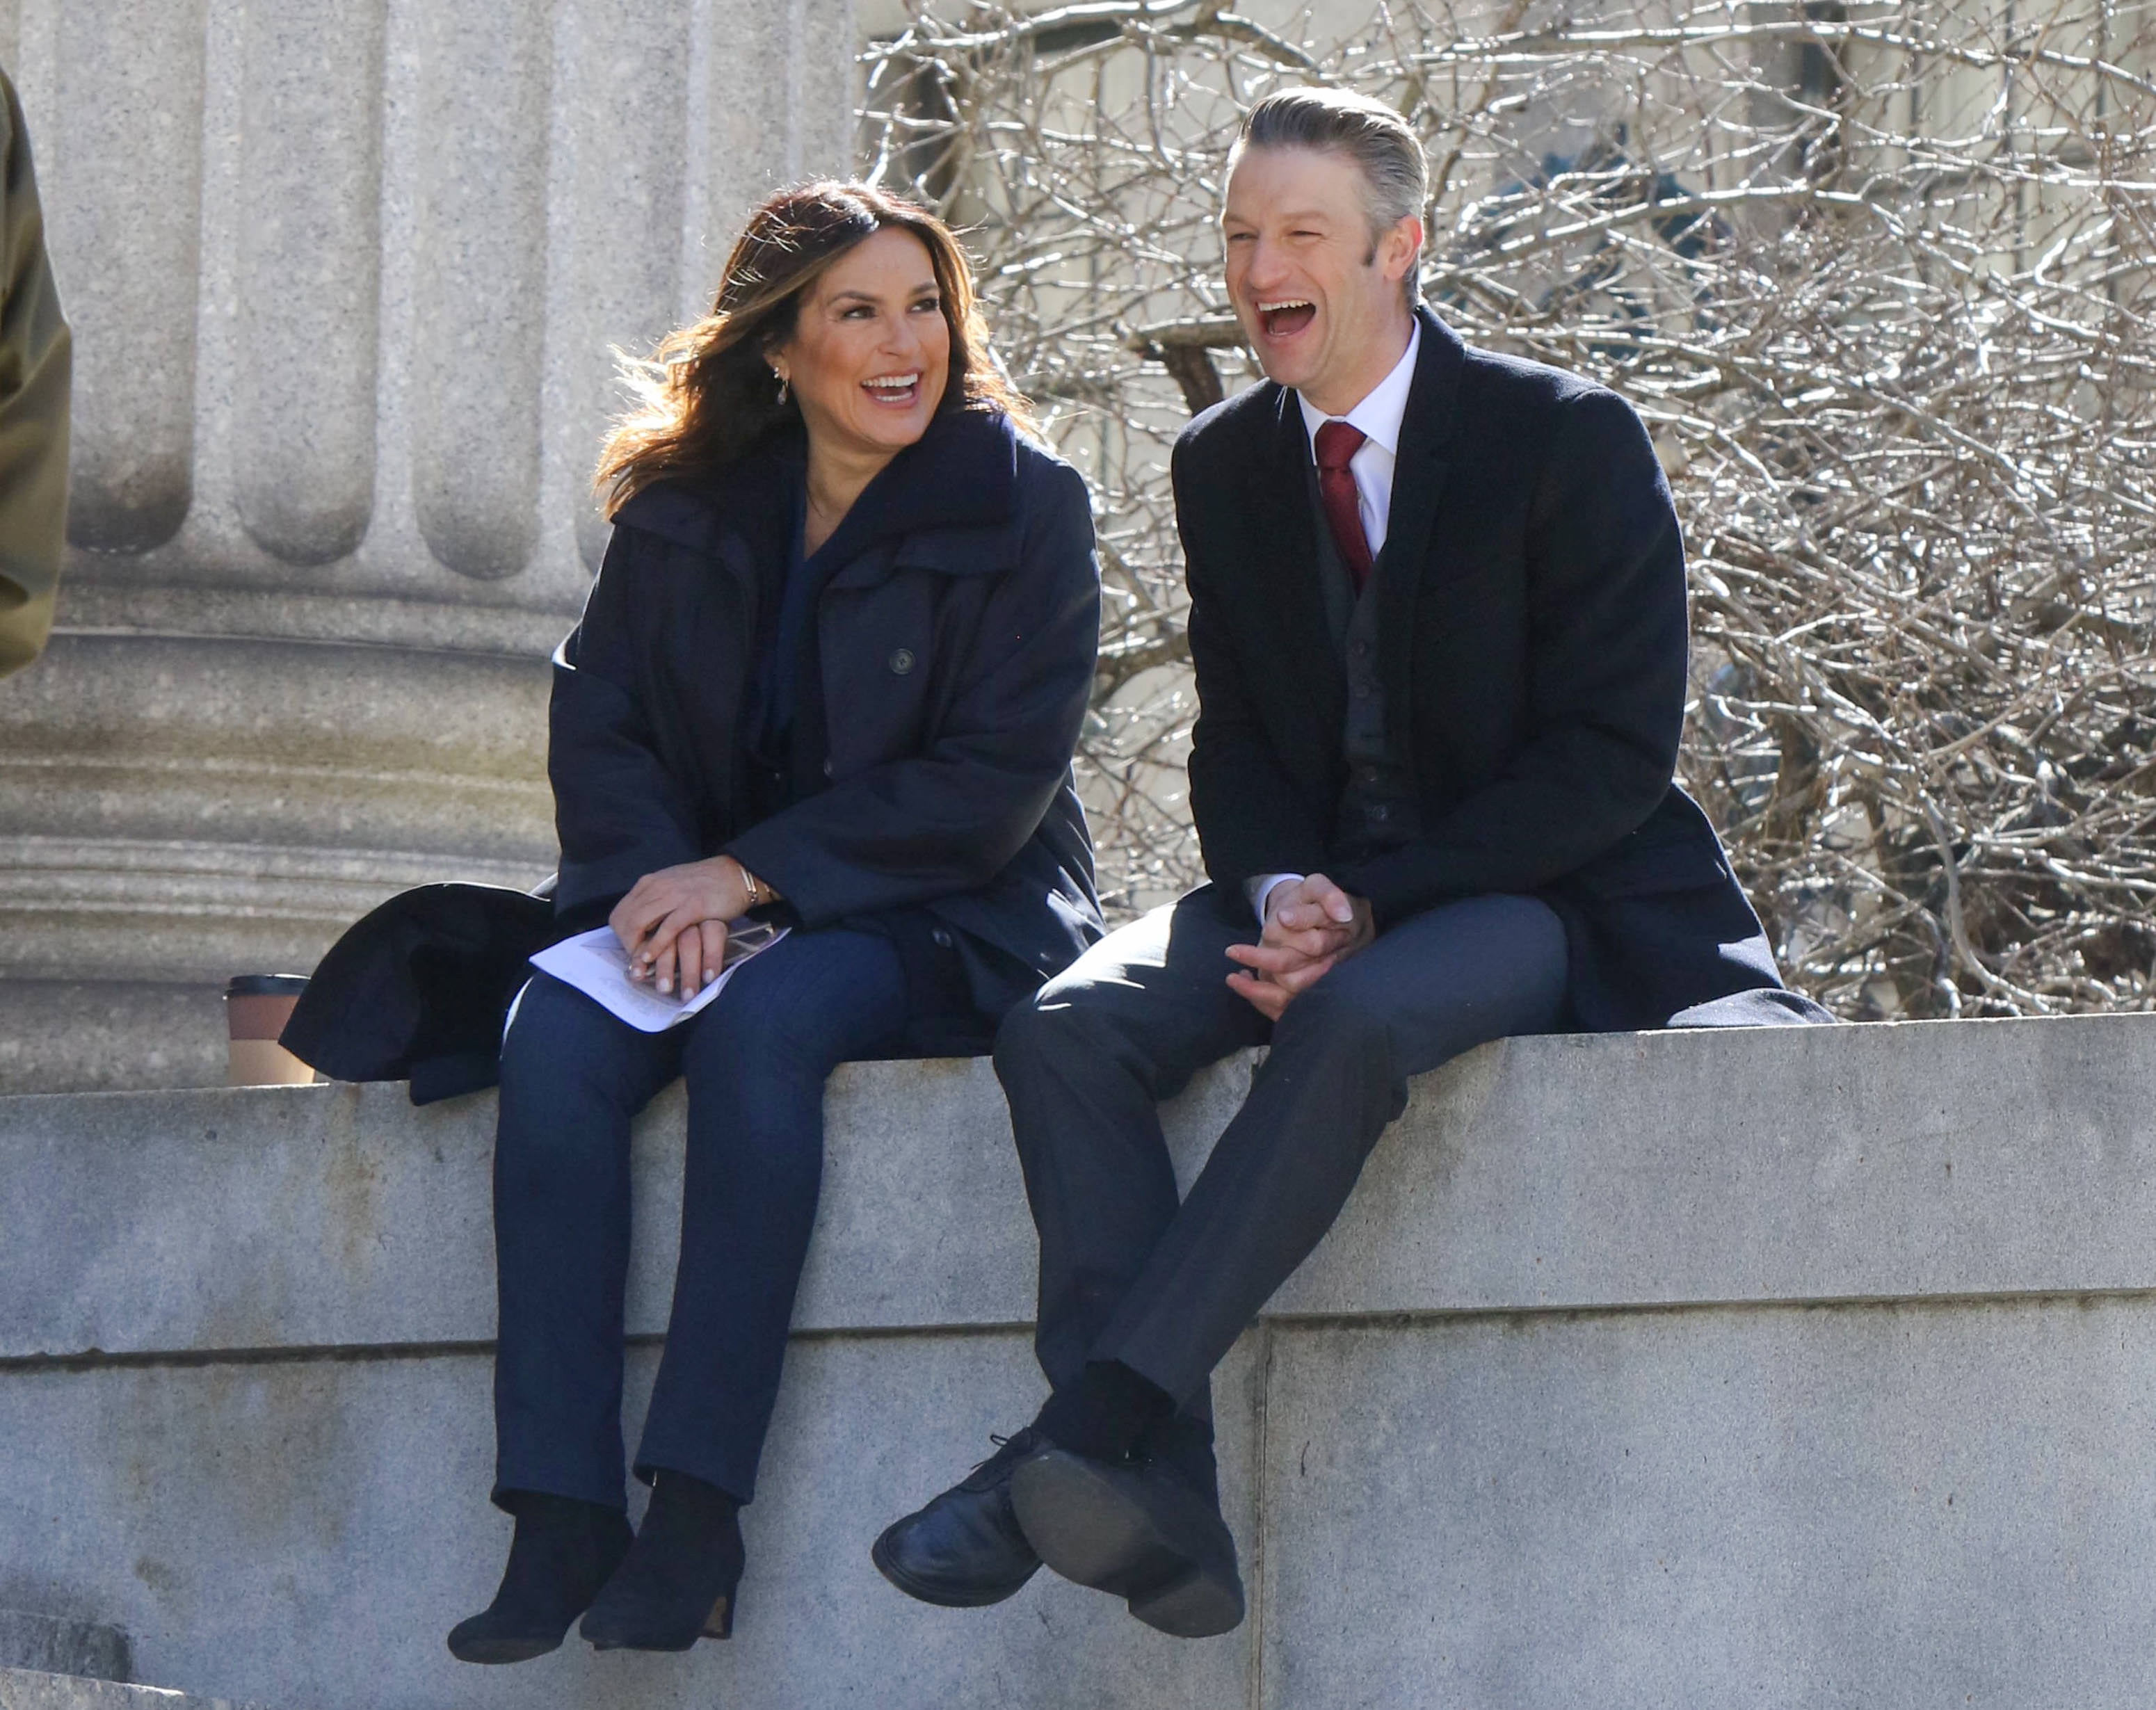 """Mariska Hargitay and Peter Scanavino on set of """"Law and Order: SVU"""" in New York City on March 6, 2020   Photo: Getty Images"""